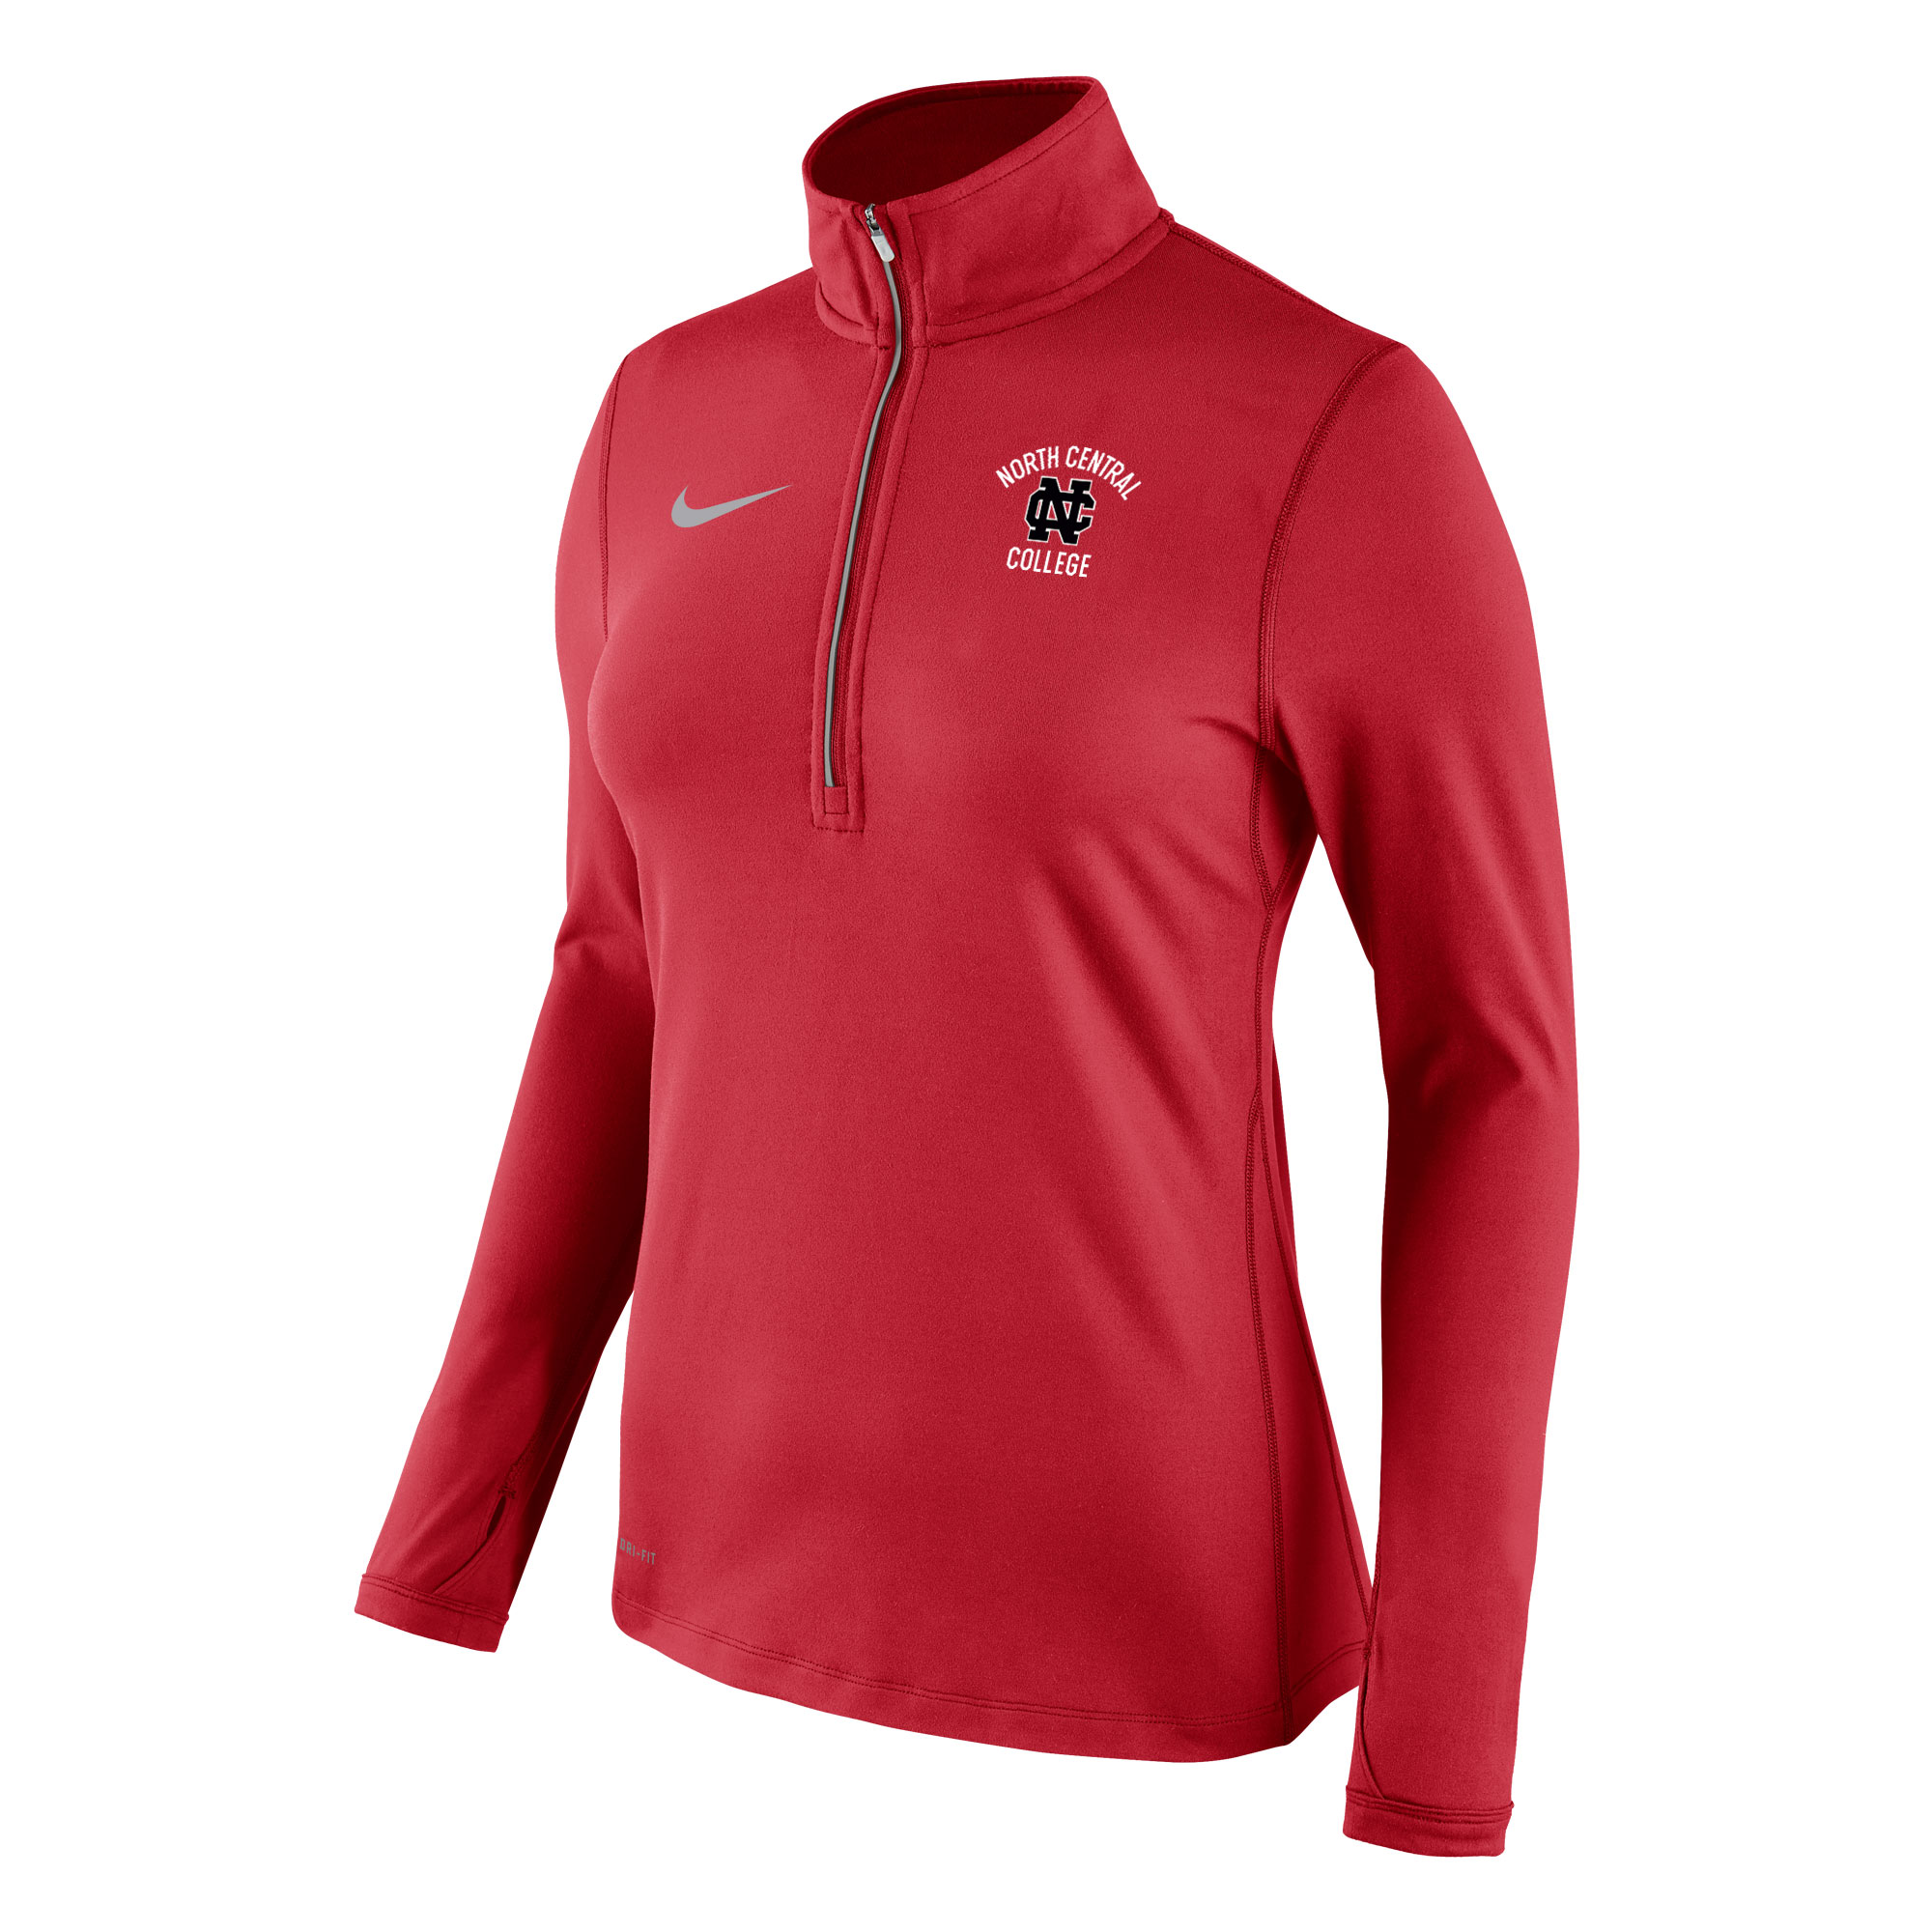 Image for the Nike Women's Tailgate Element 1/2 Zip product